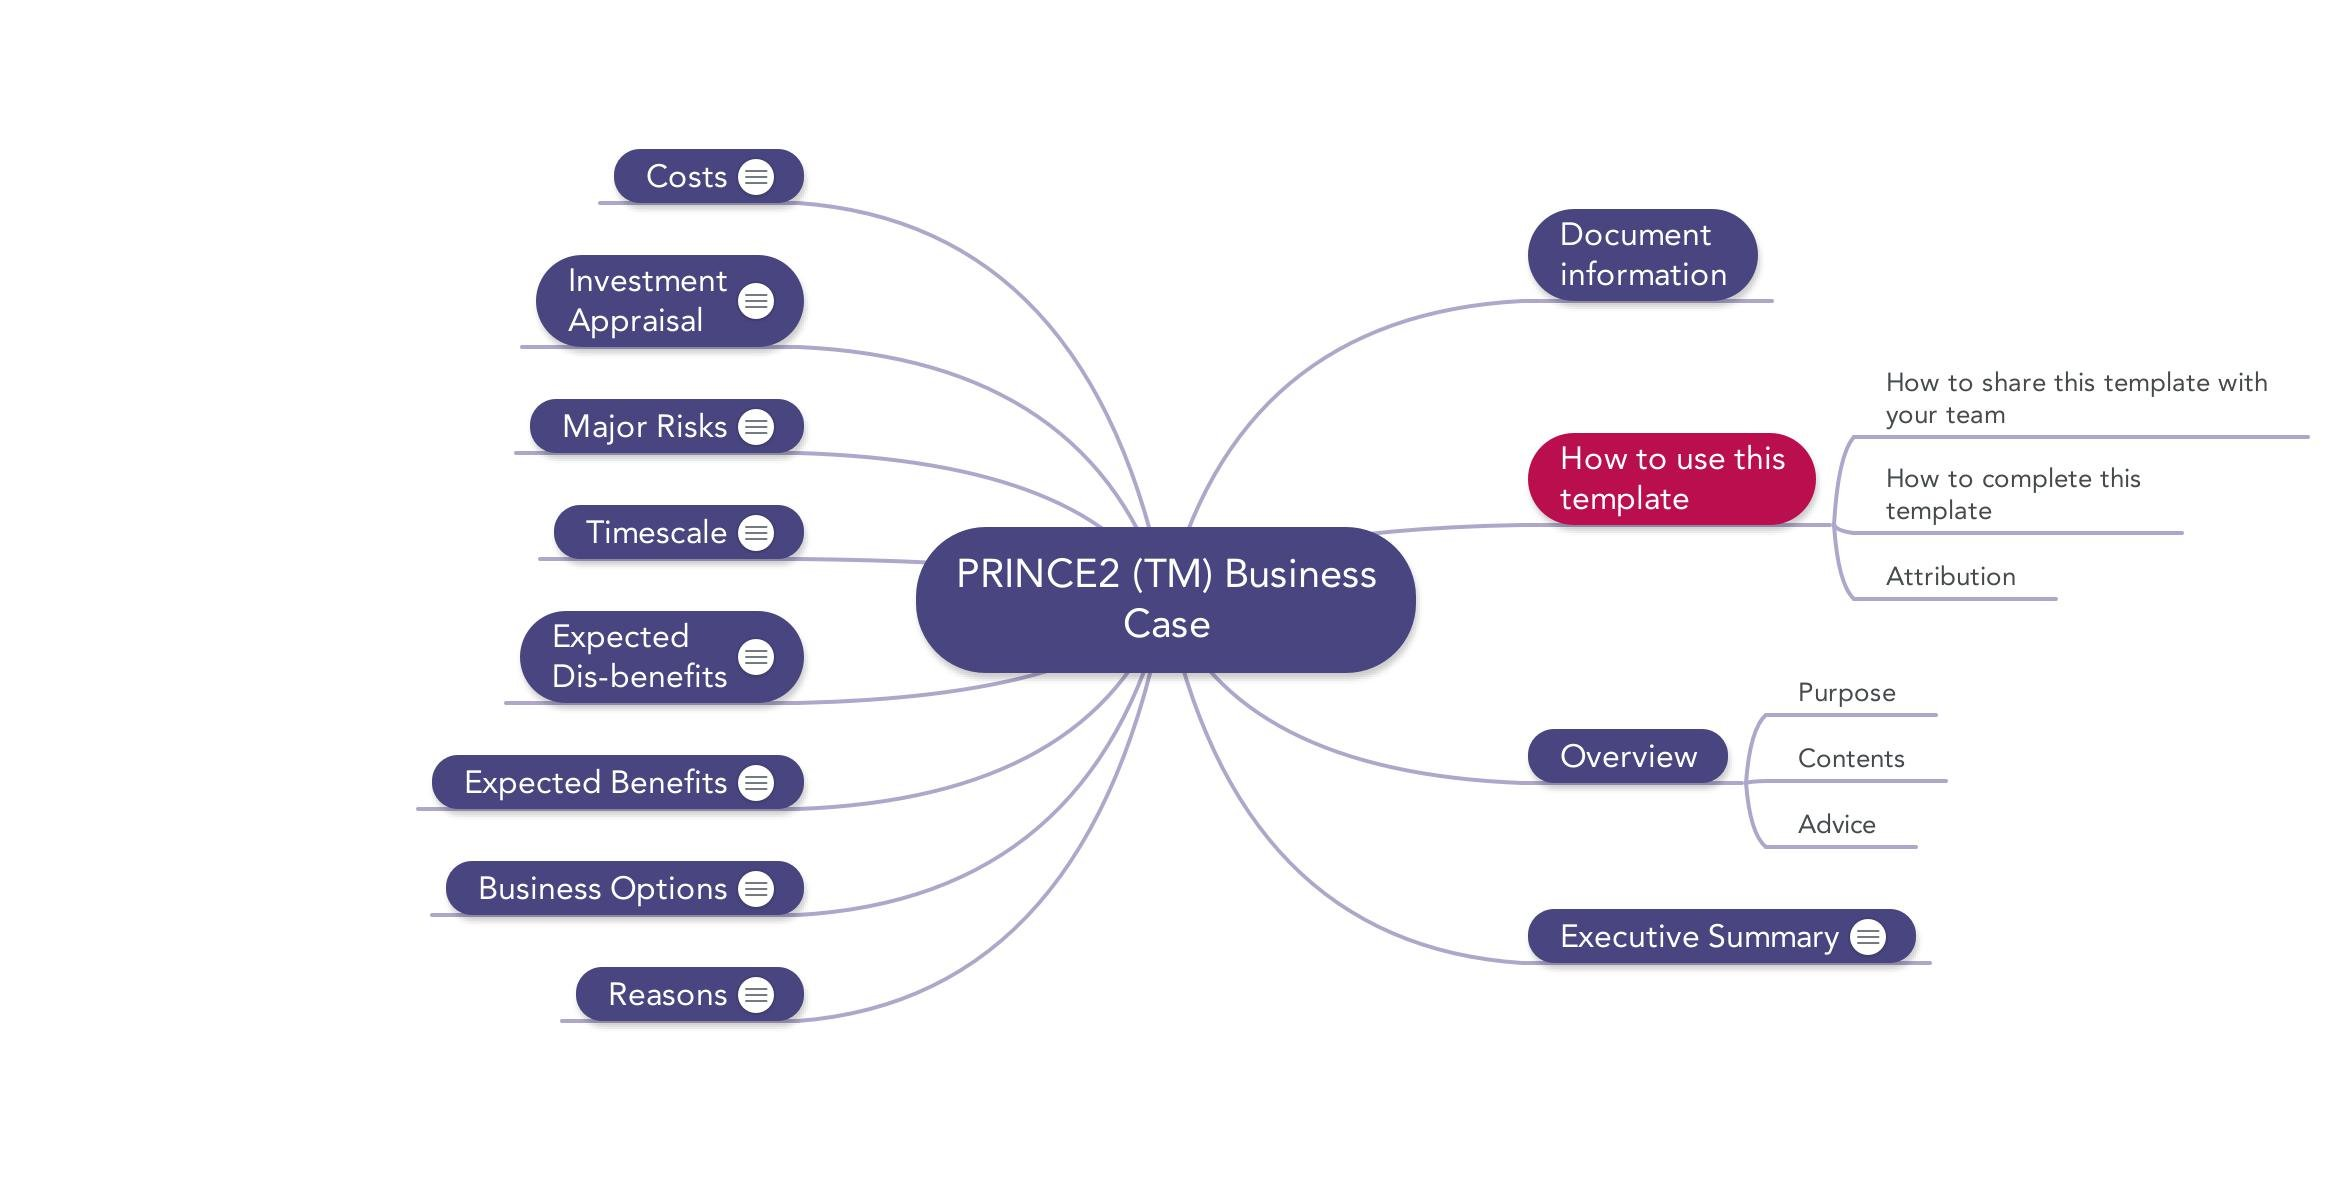 Prince2 business case download template prince2 business case friedricerecipe Image collections